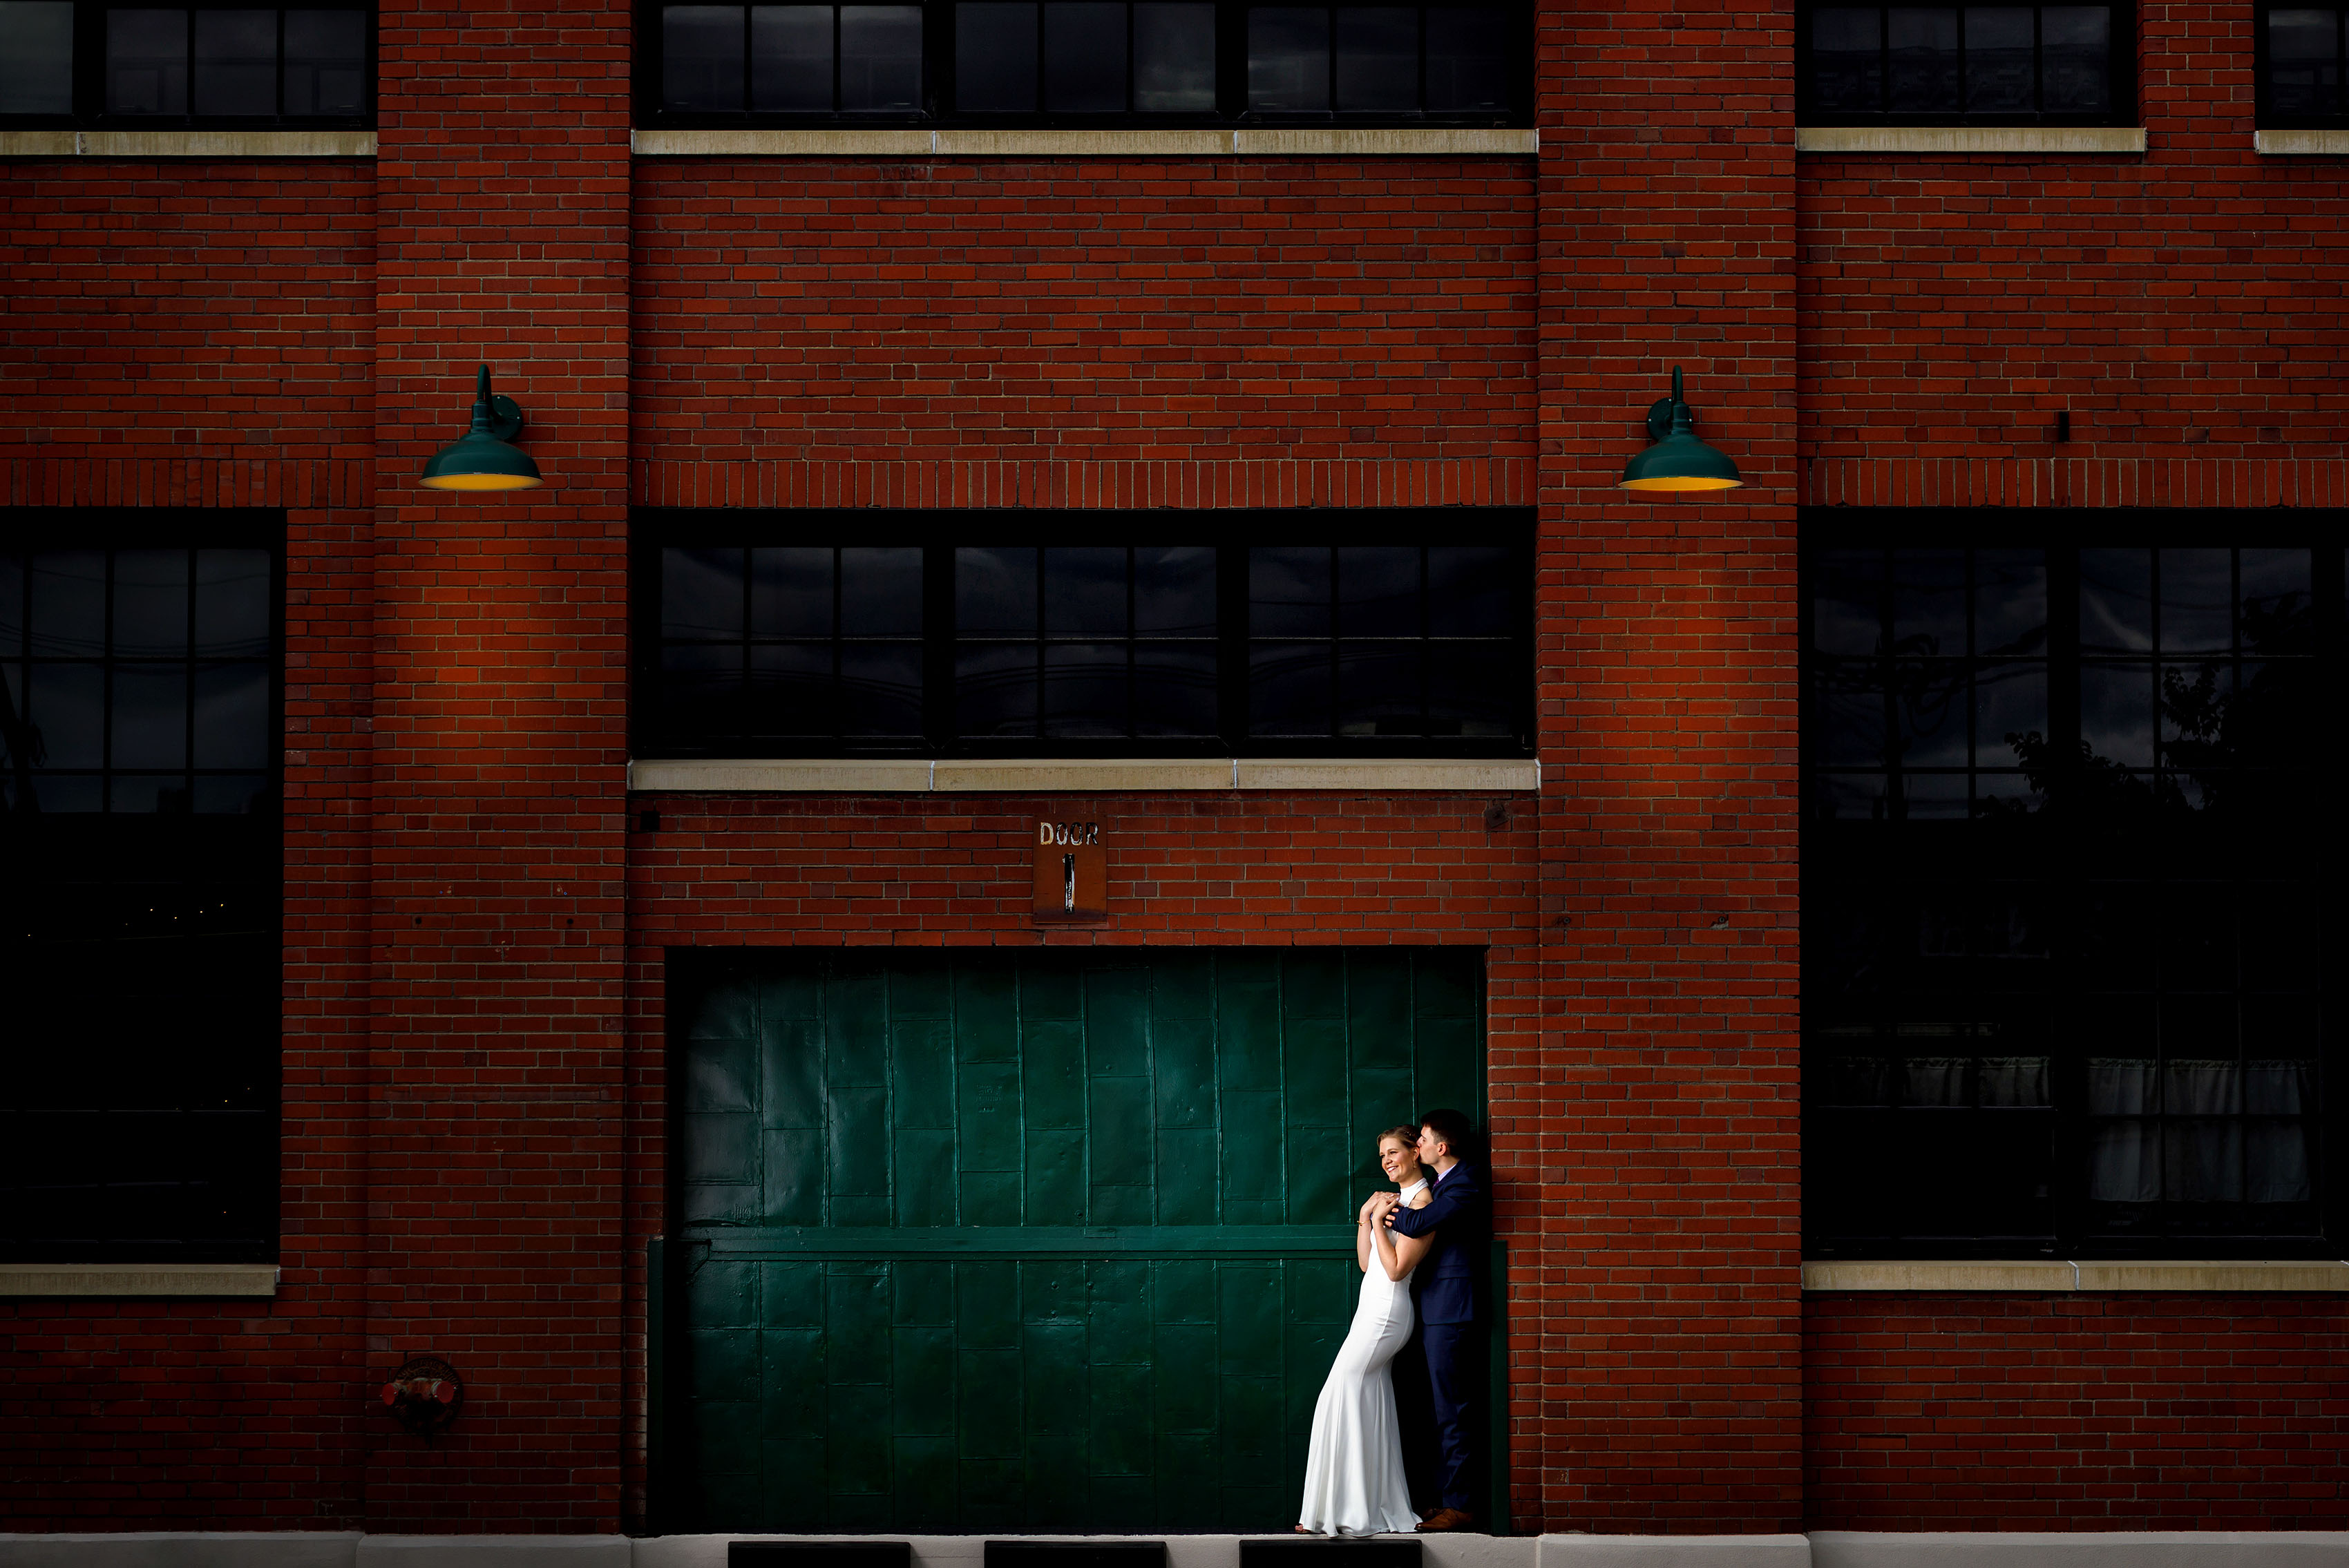 Couple pose for a wedding portrait in the RiNo neighborhood in Denver